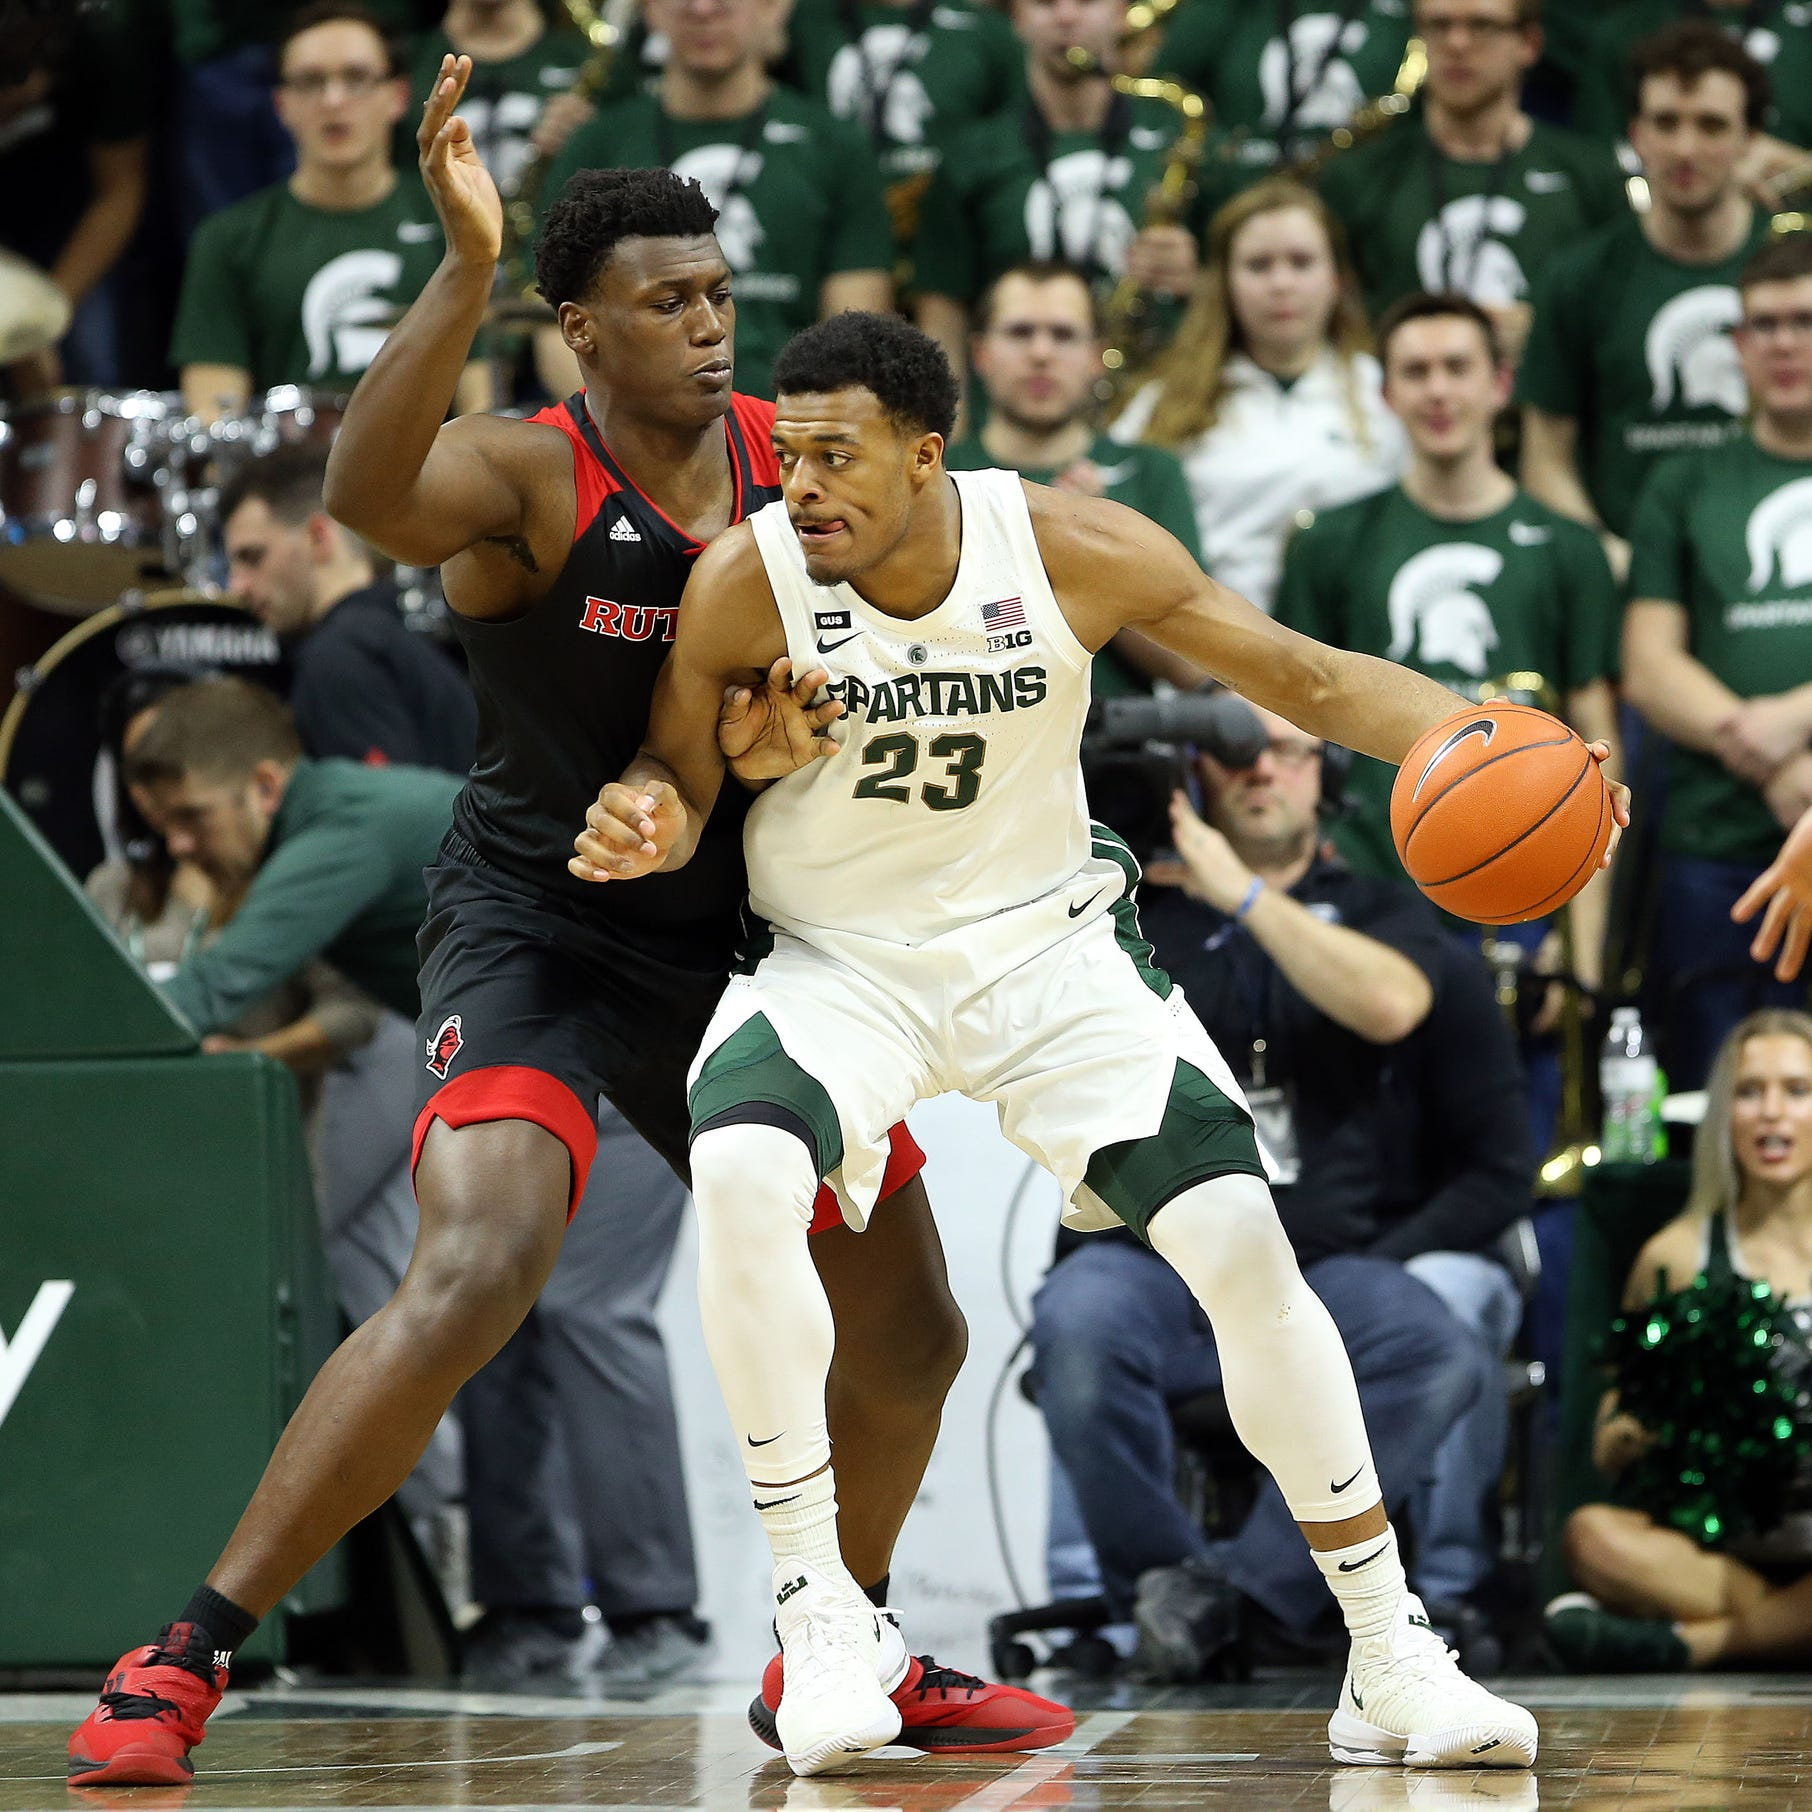 Michigan State no longer has room for error without Nick Ward